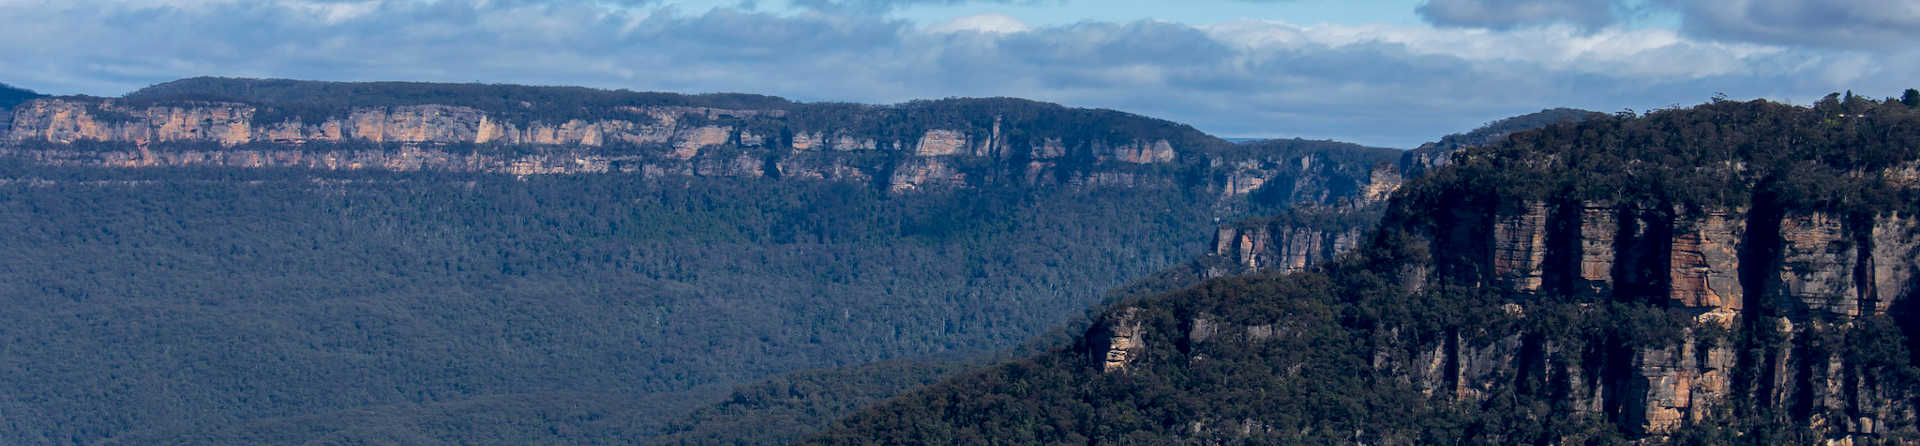 How long does it take to get to the Blue Mountains from Sydney?